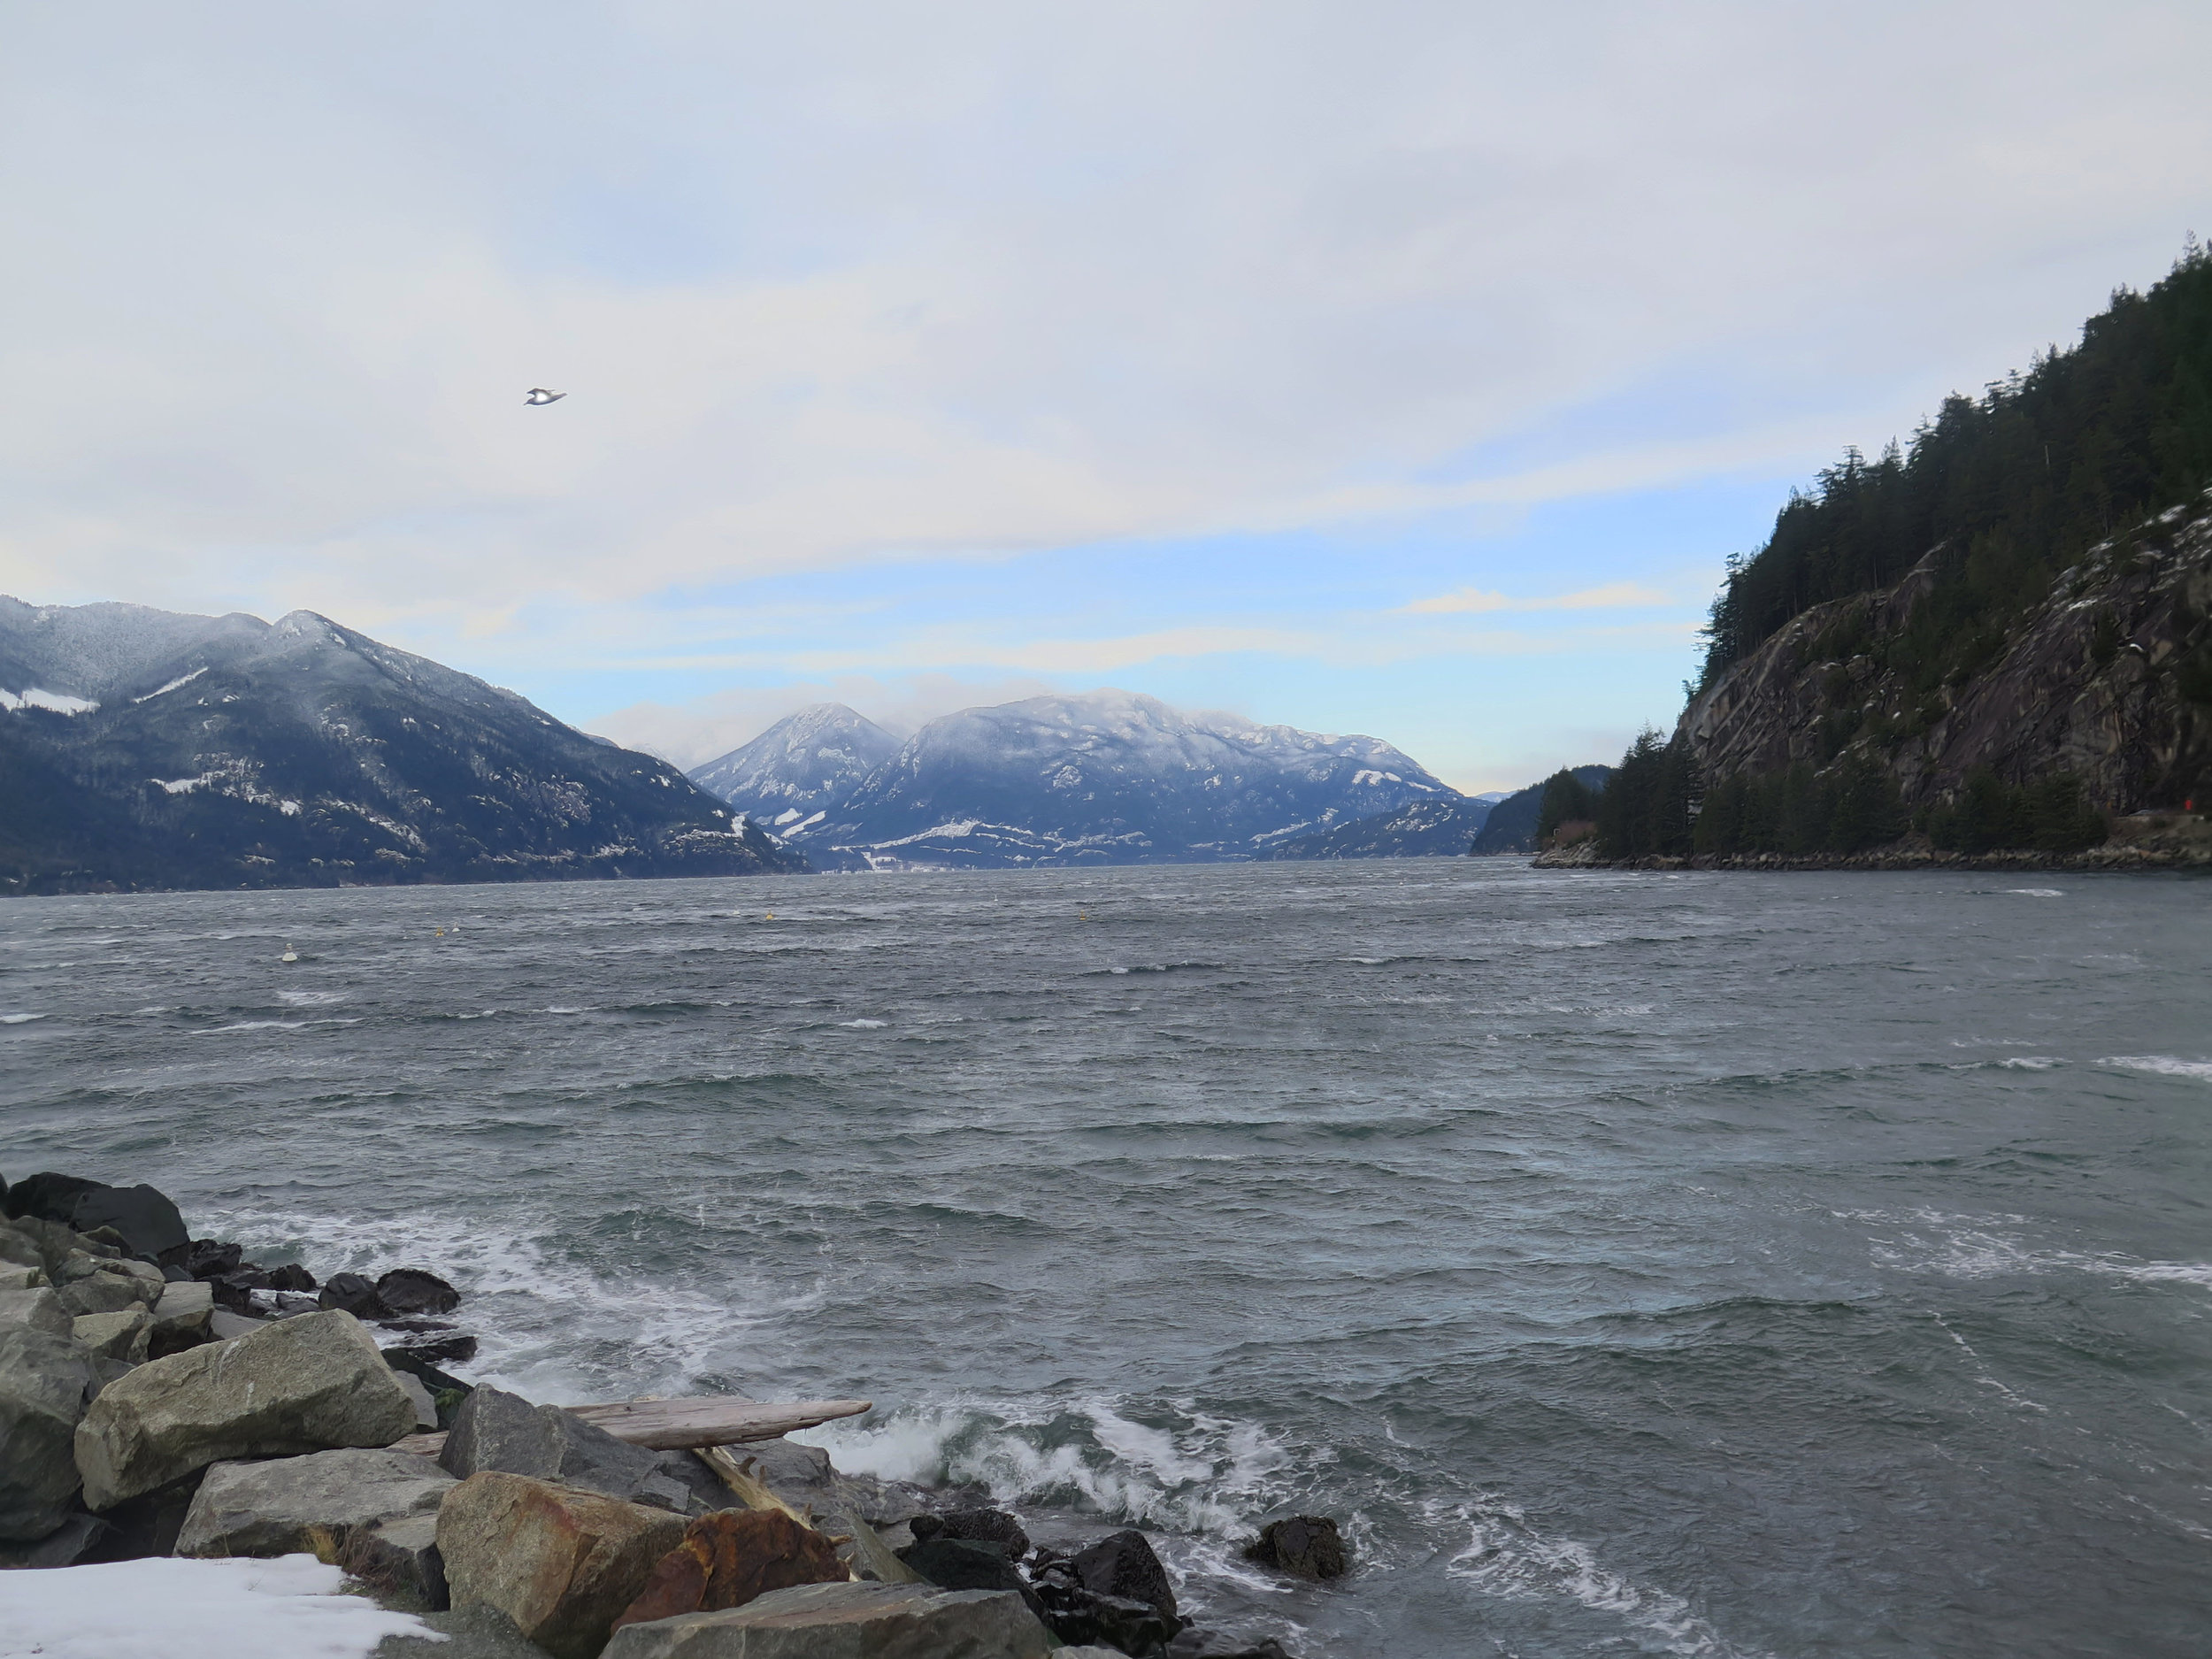 The Howe Sound